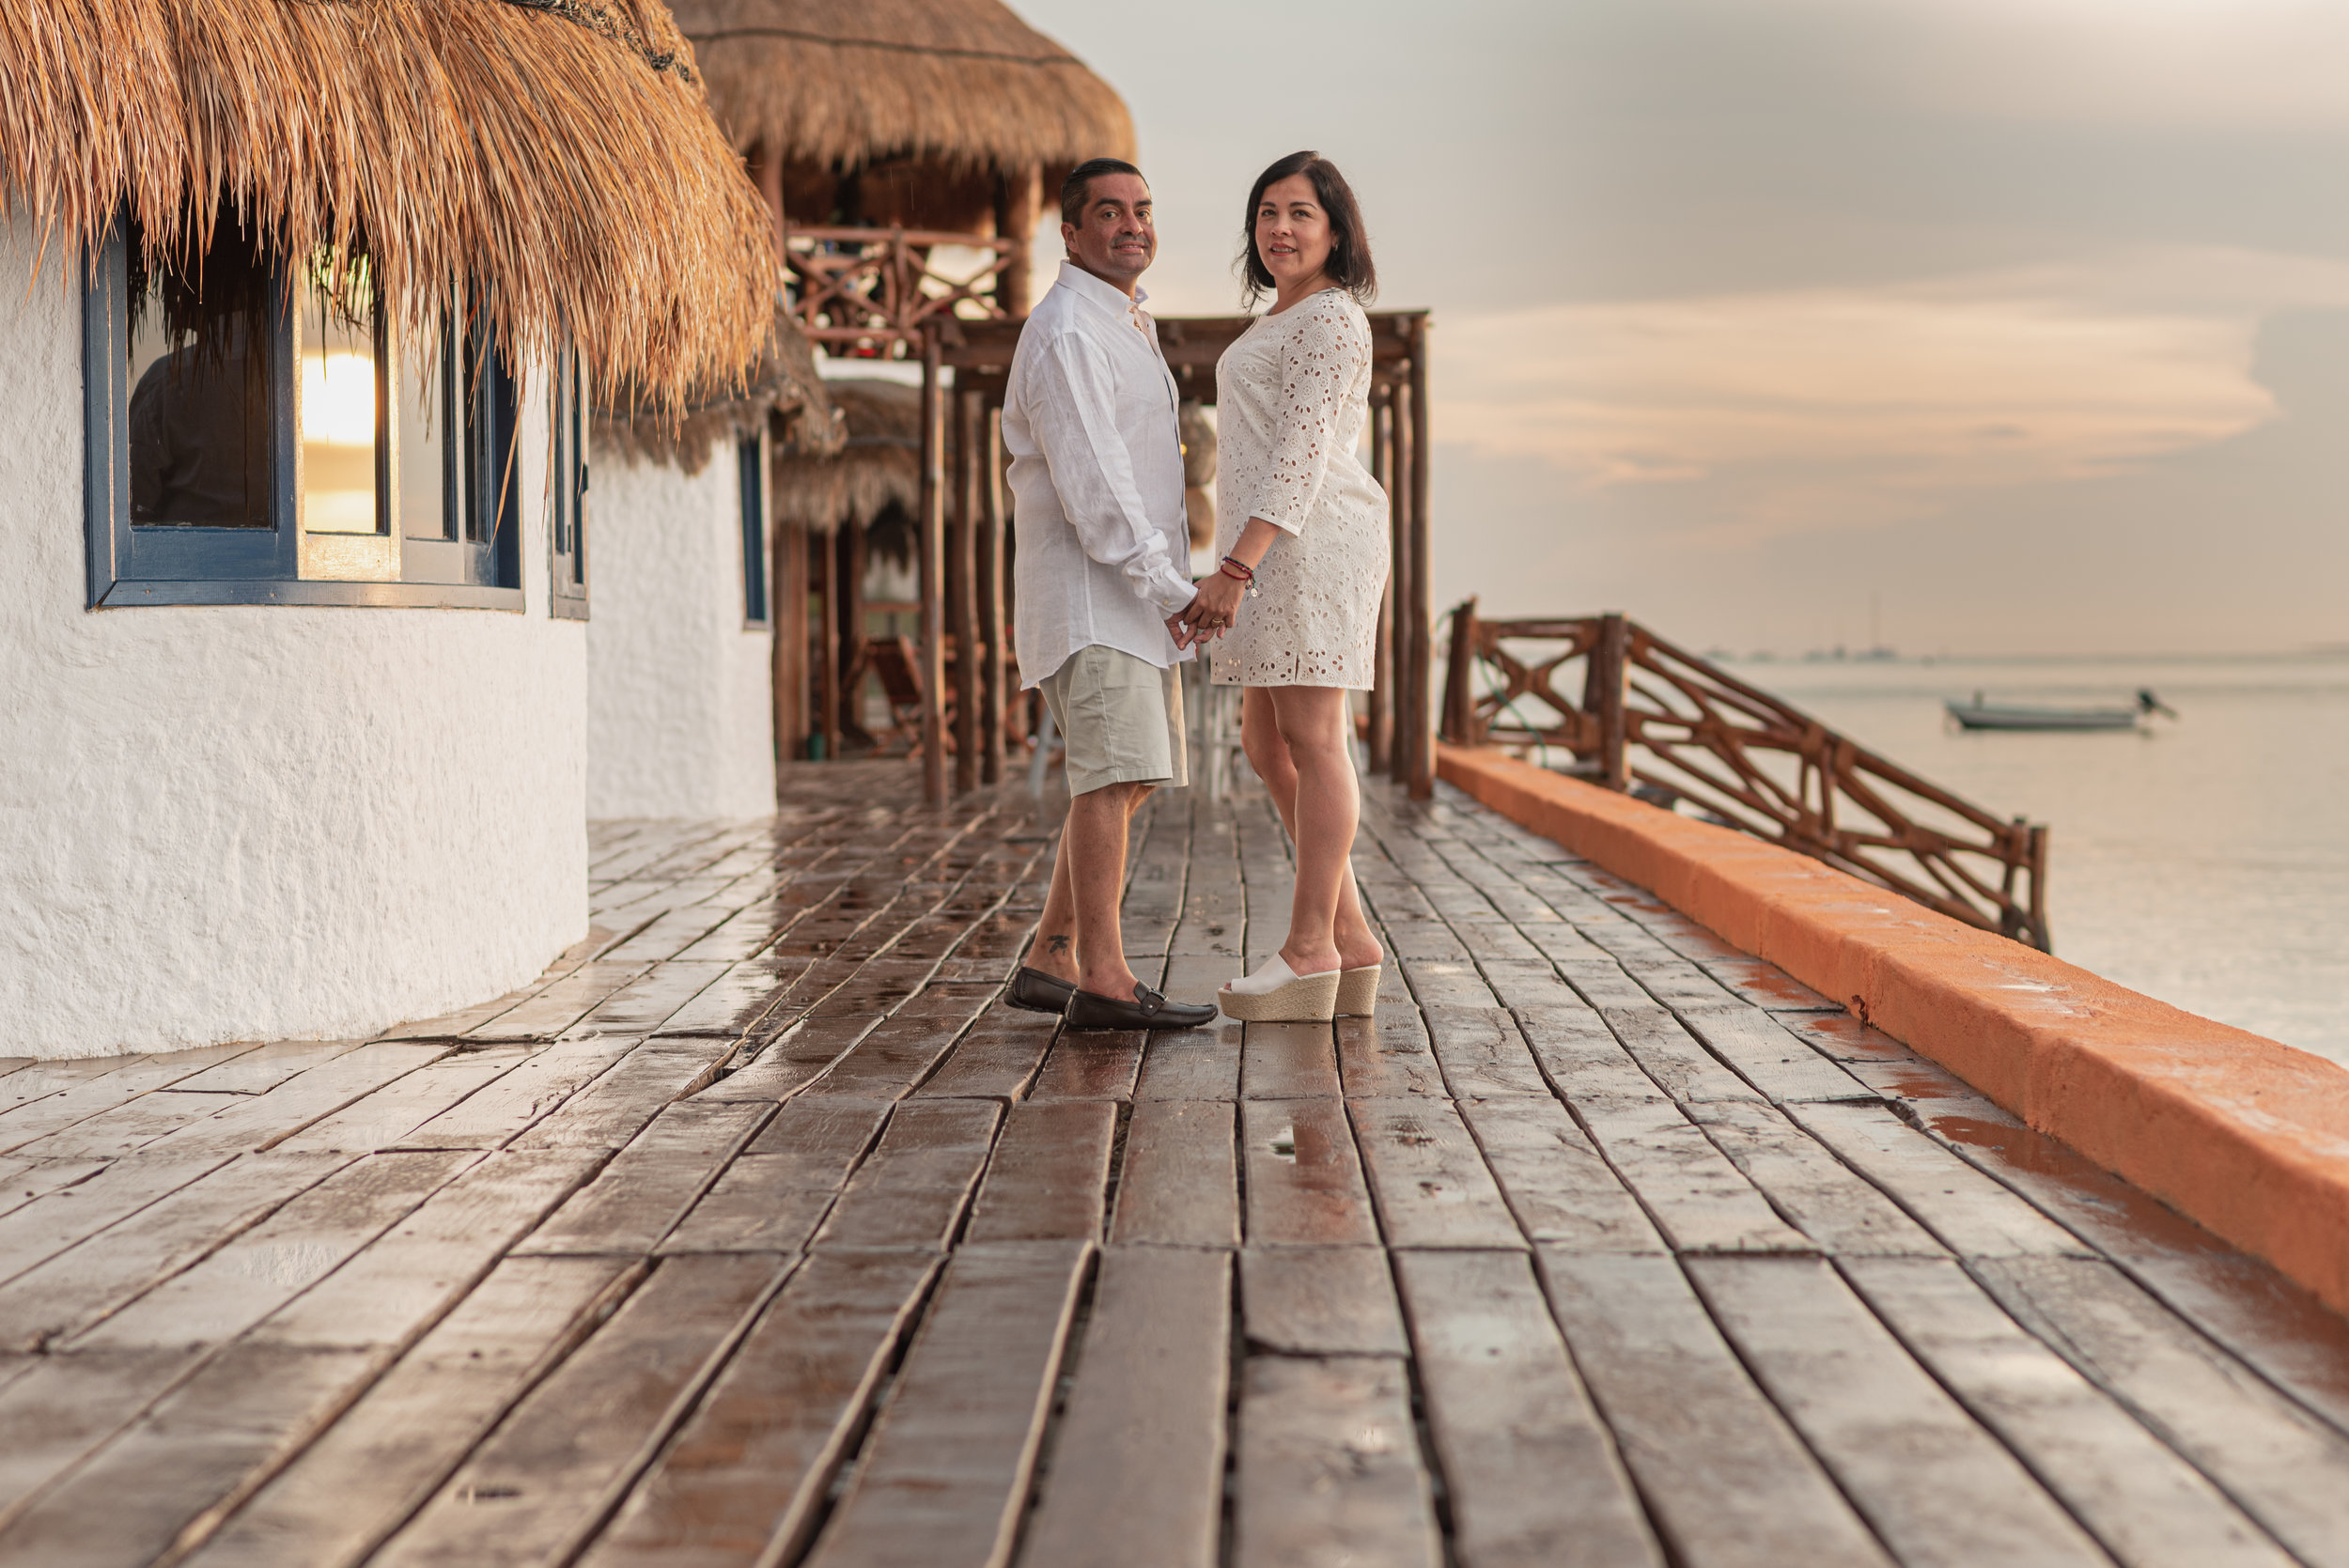 Holbox couples photoshoots f&f series 5 by @emmanuelphotoartist